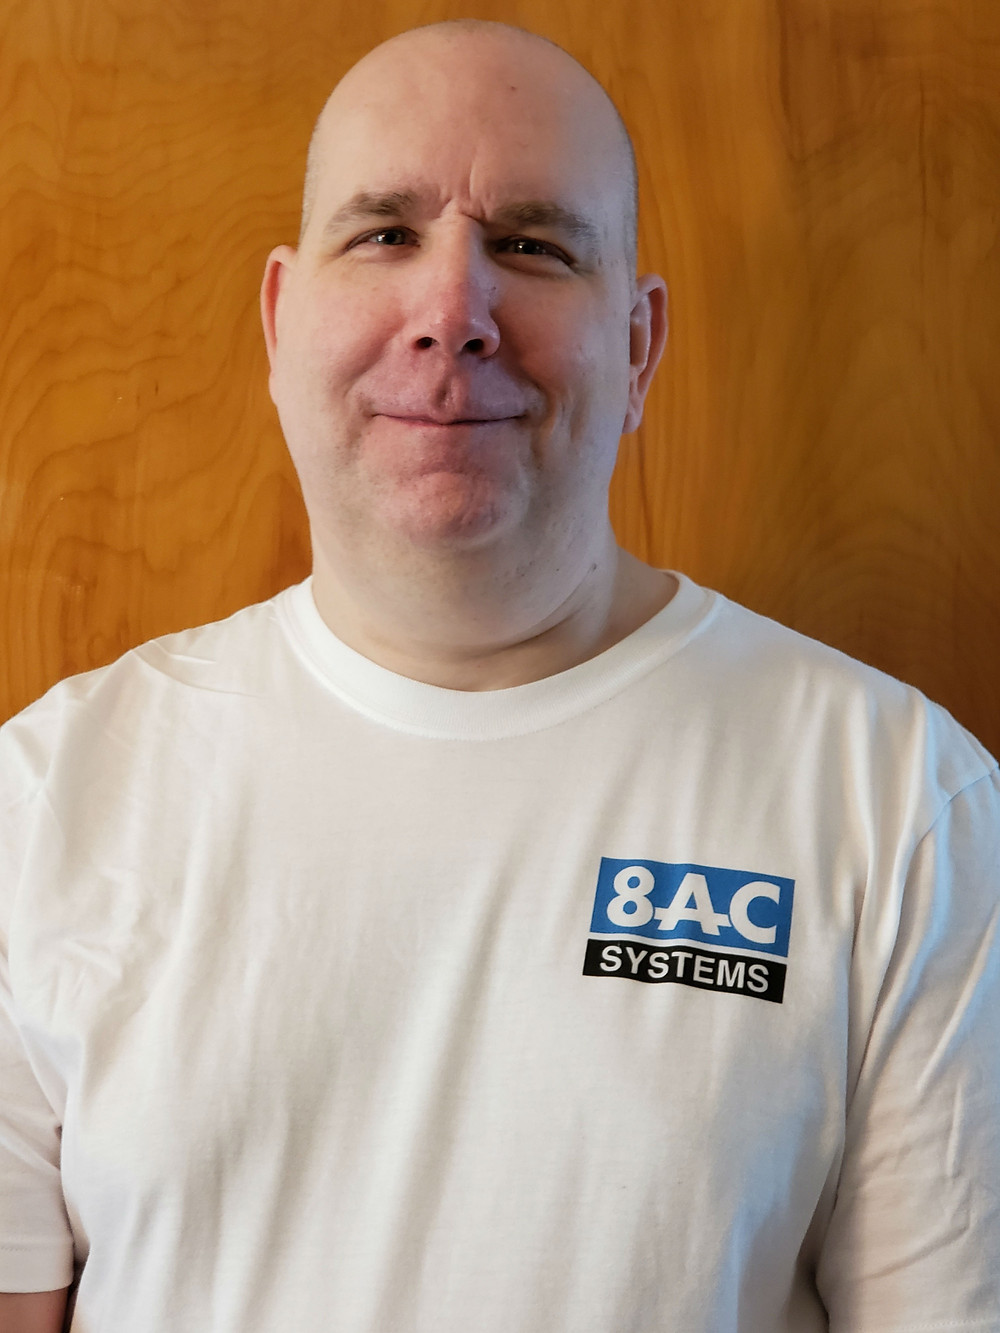 Kenneth Johnson, master codesman at 8AC Systems in Wilkes Barre, Pa.